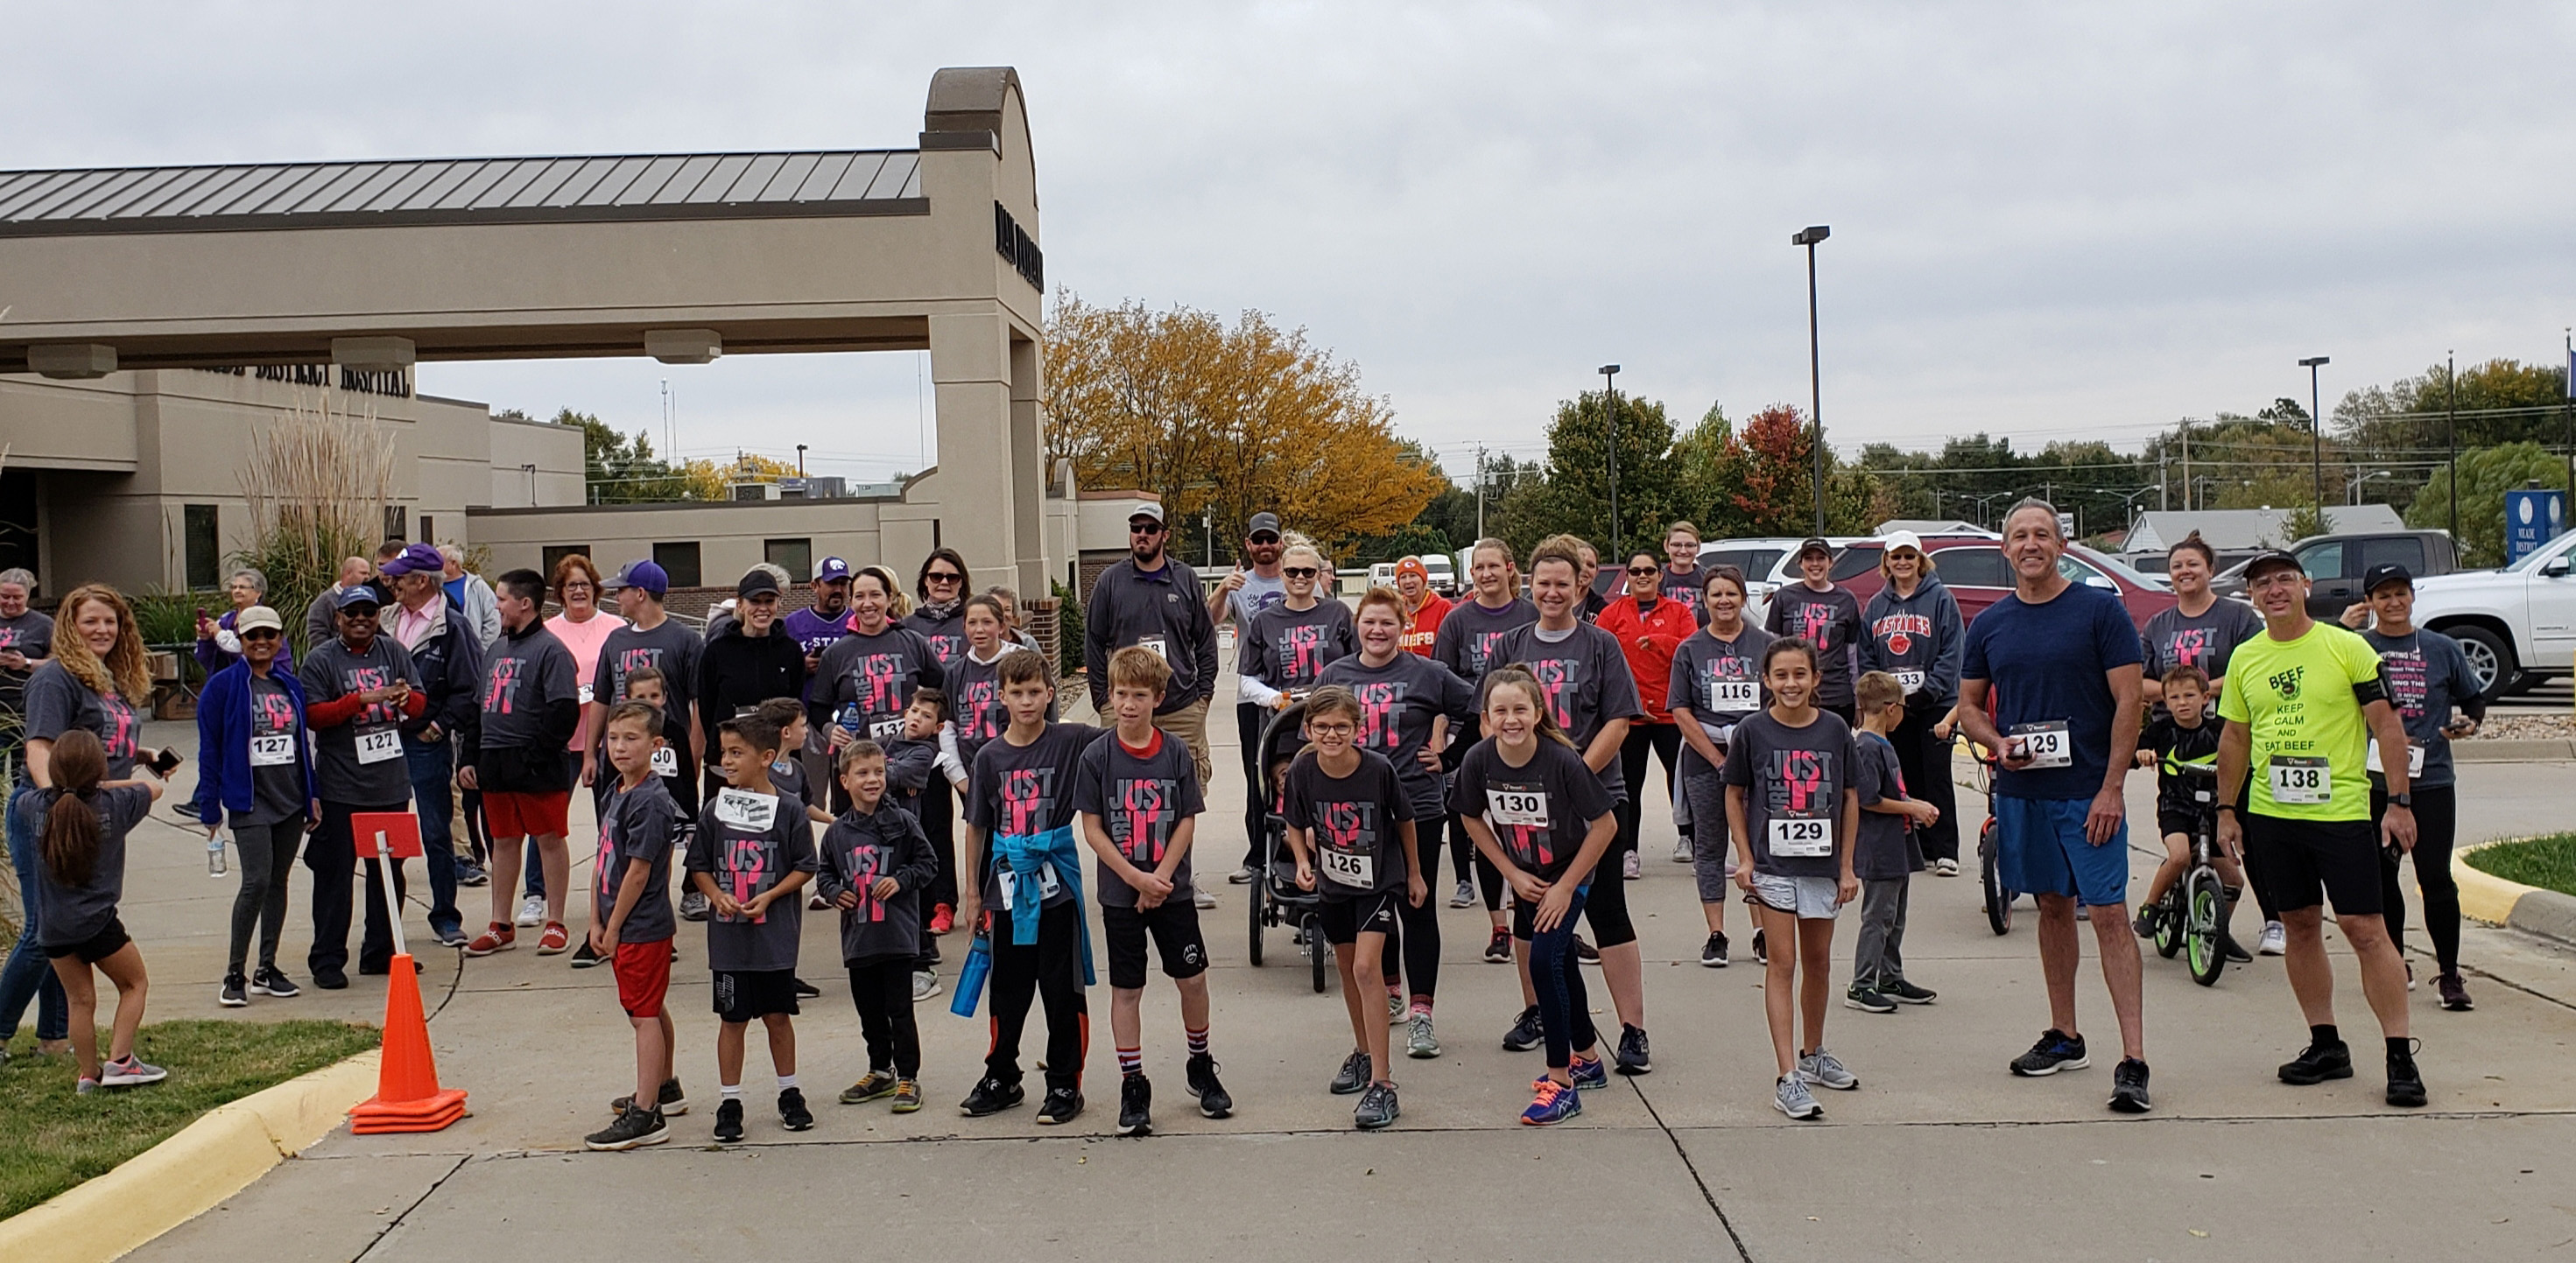 Meade District Hospital Hosts Third Annual Breast Cancer Awareness 5K